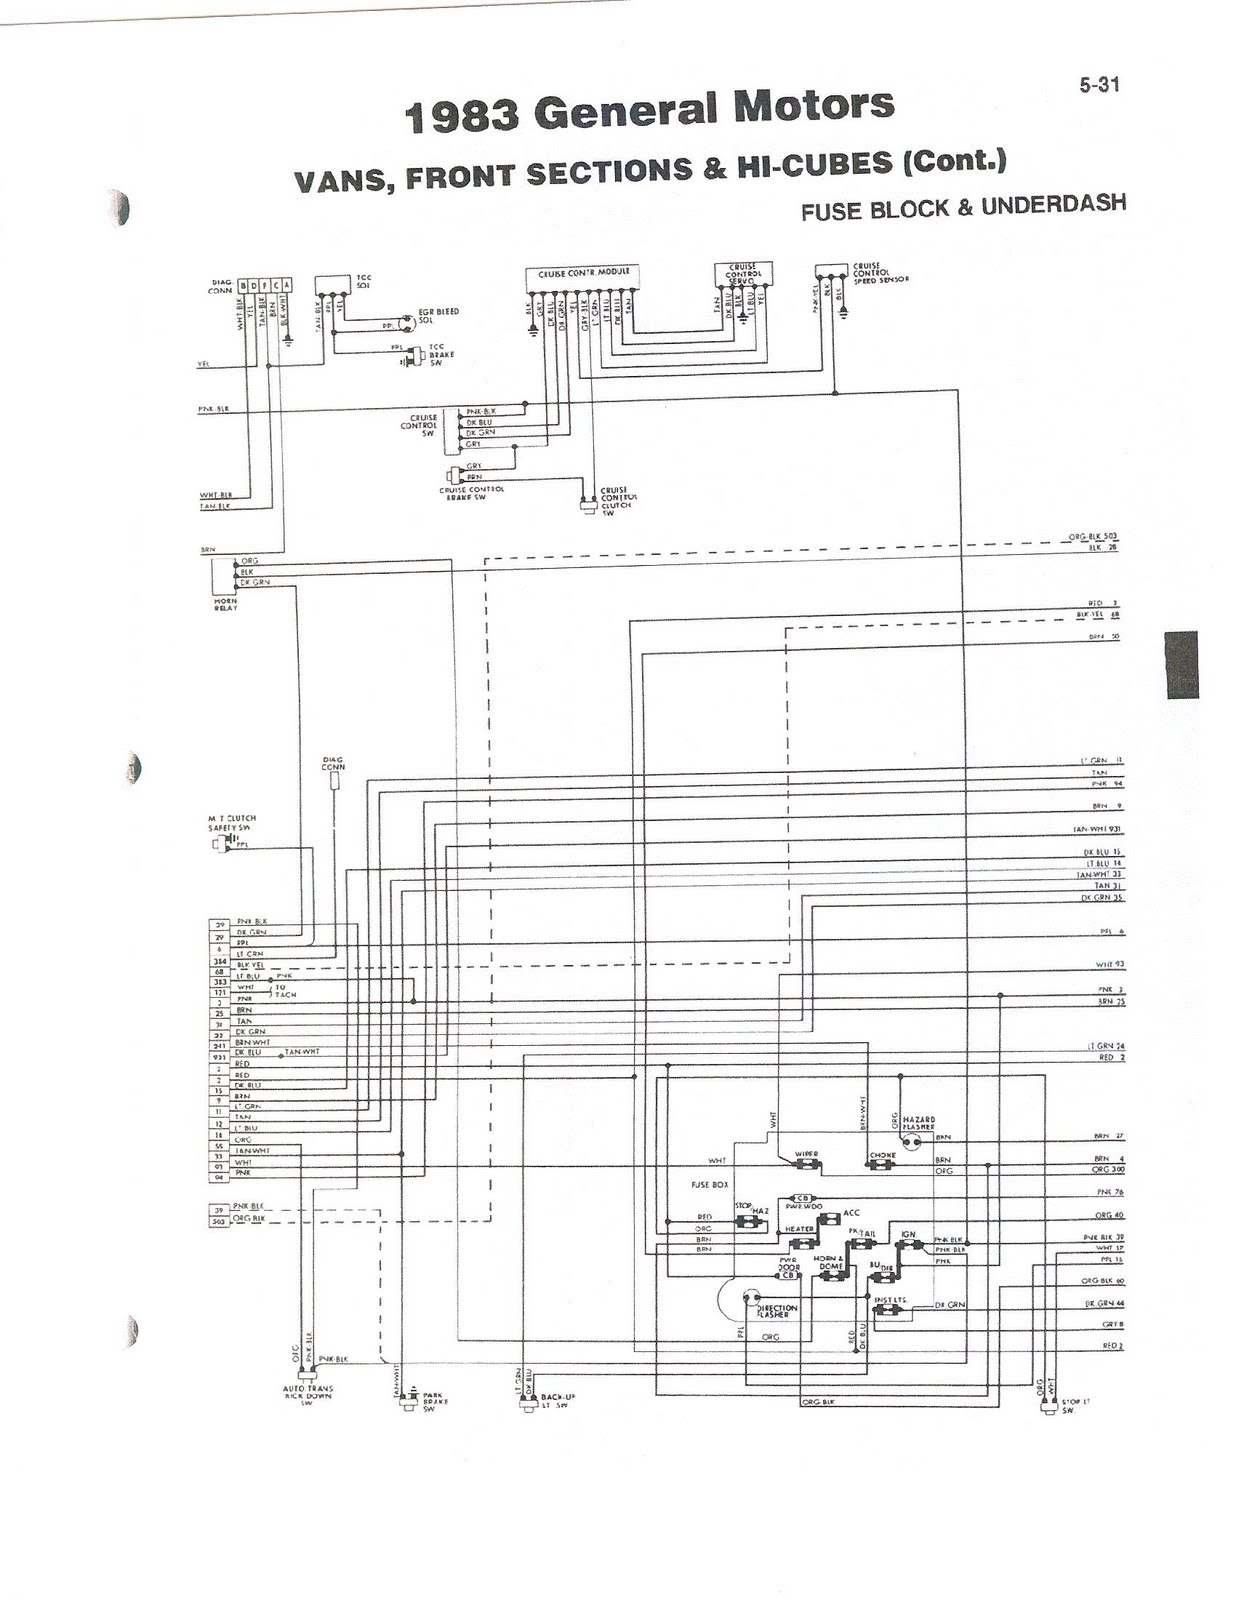 1983 Fleetwood Pace Arrow Owners Manuals Wireing Diagram 83 Gm Van Chevrolet Fuse Box Front Section Hi Cube